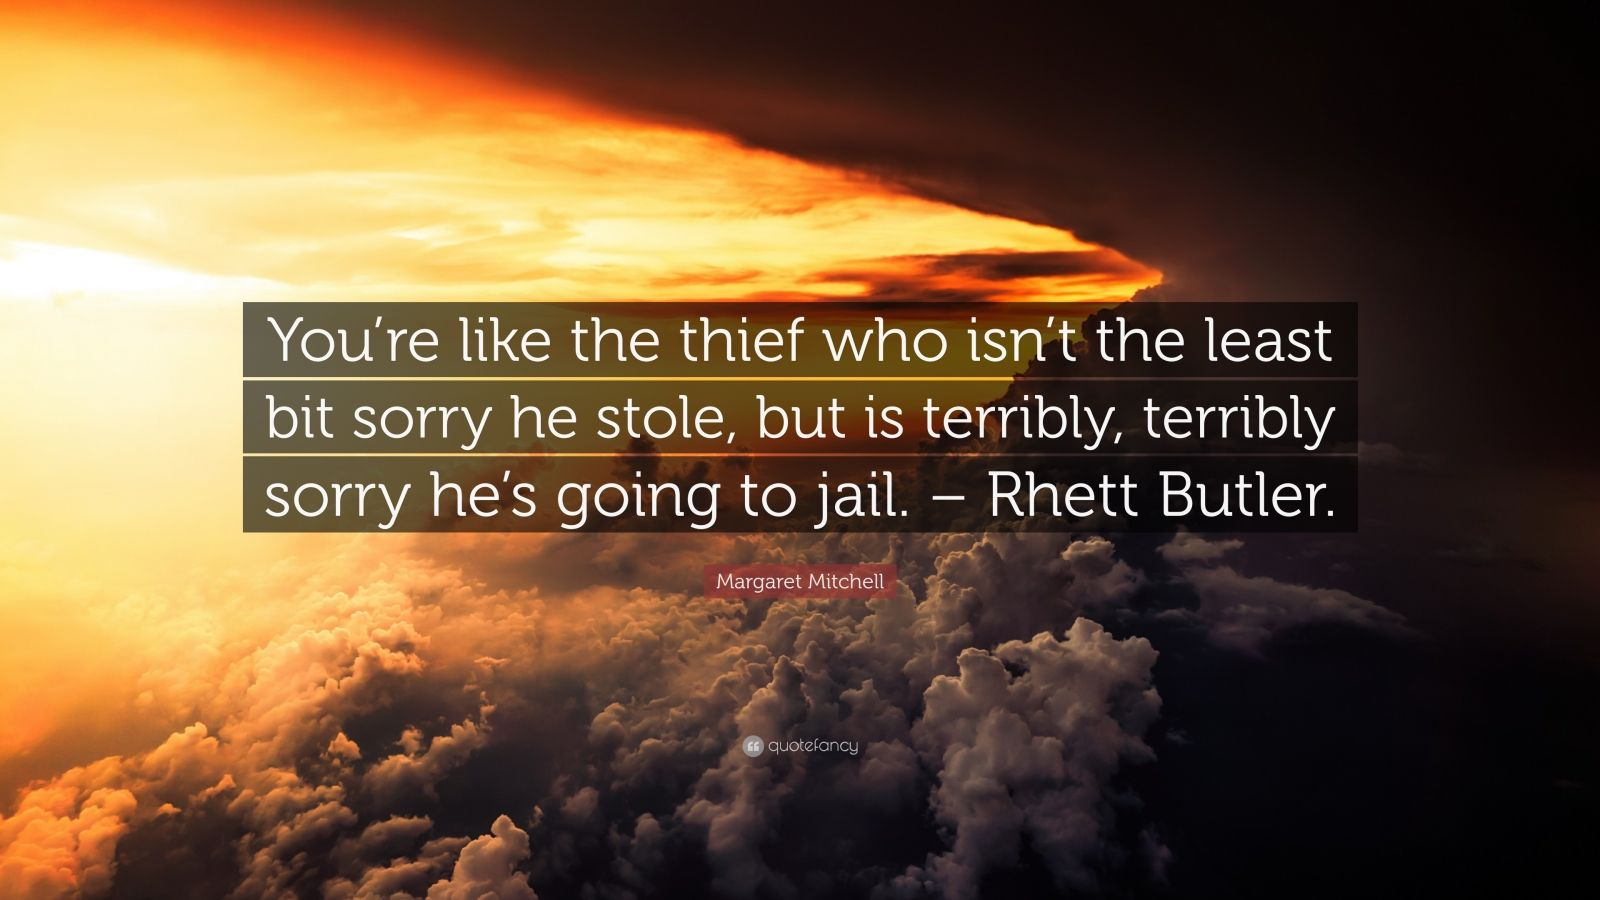 """Margaret Mitchell Quote: """"You're like the thief who isn't the least bit sorry he stole, but is terribly, terribly sorry he's going to jail. – Rhett Butler."""""""